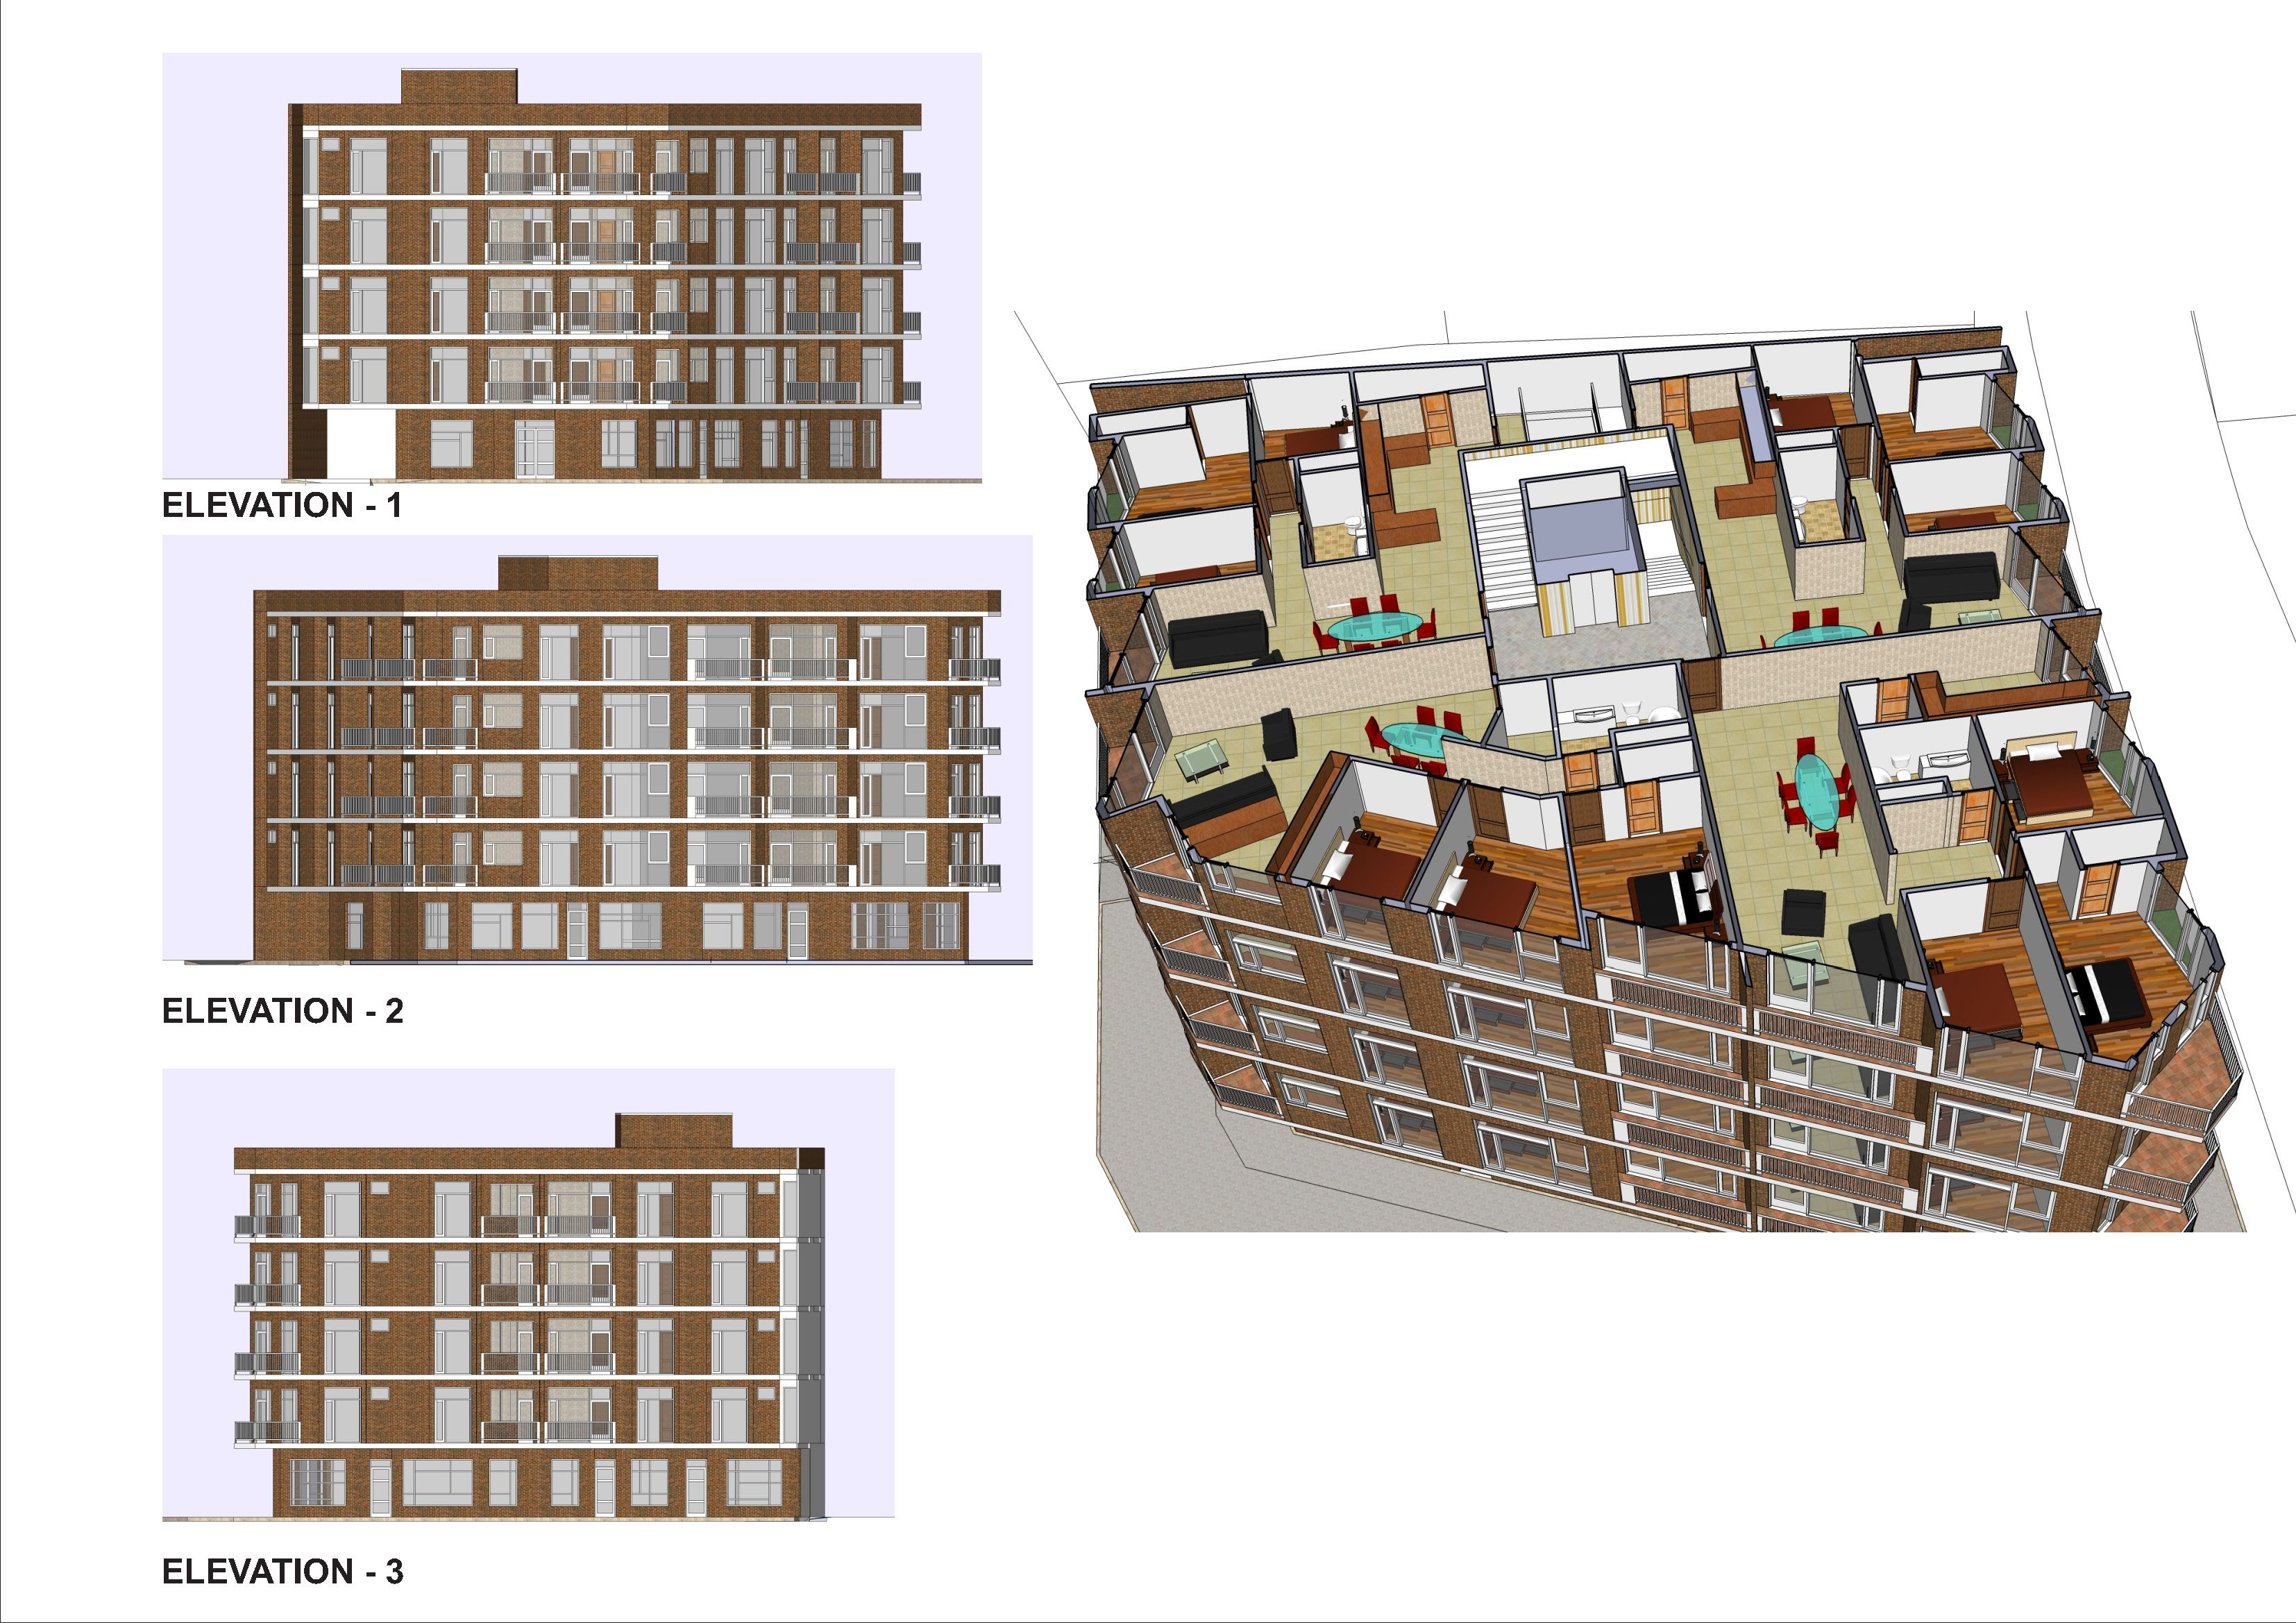 apartment building plans  Location Aksaray Turkey New Residential Apartment Building Plans